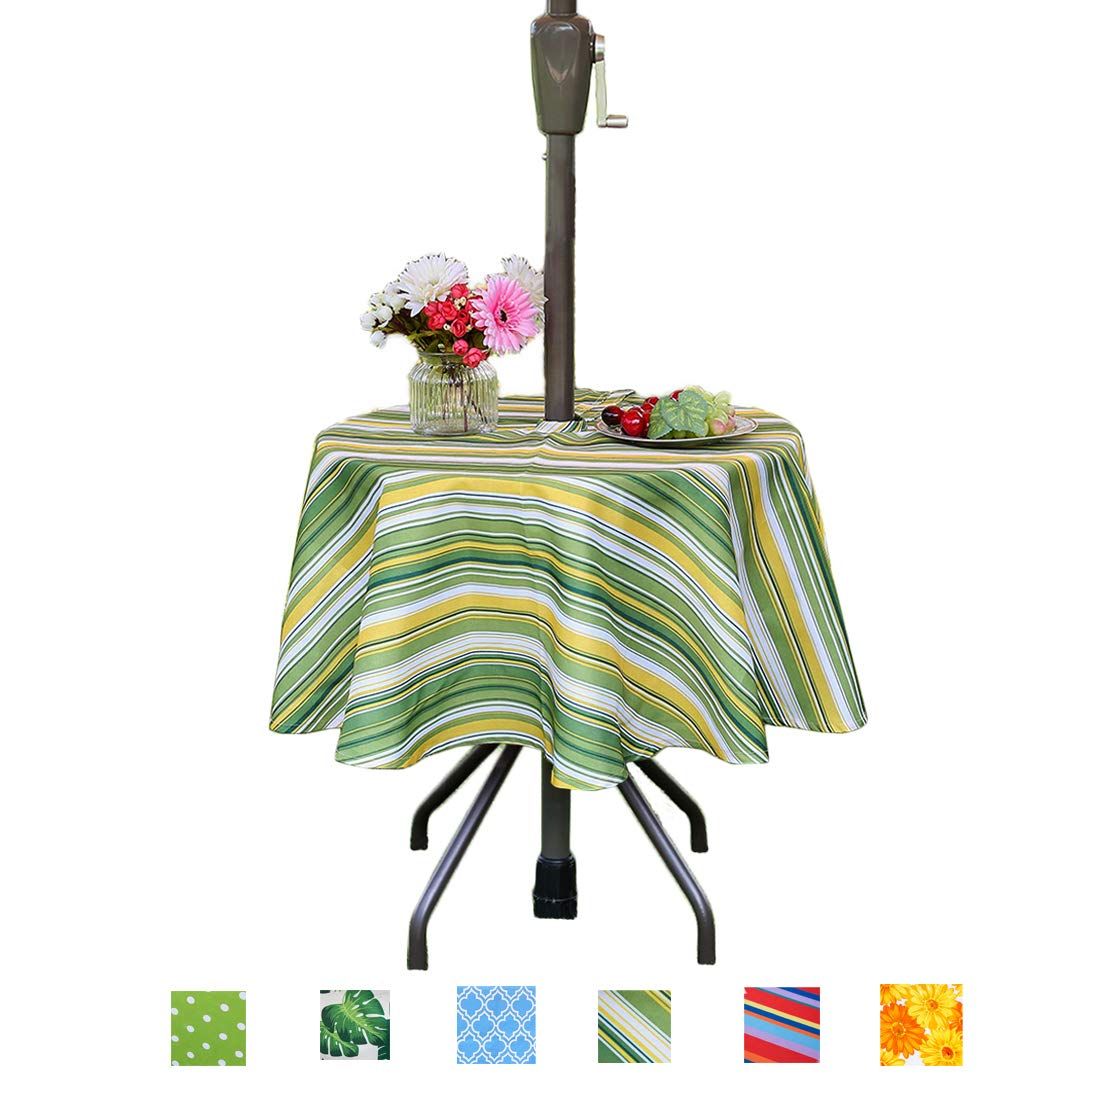 eternal beauty polyester tablecloths spill proof outdoor tablecloth round with umbrella hole zipper for spring summer patio picnic bbq green stripe